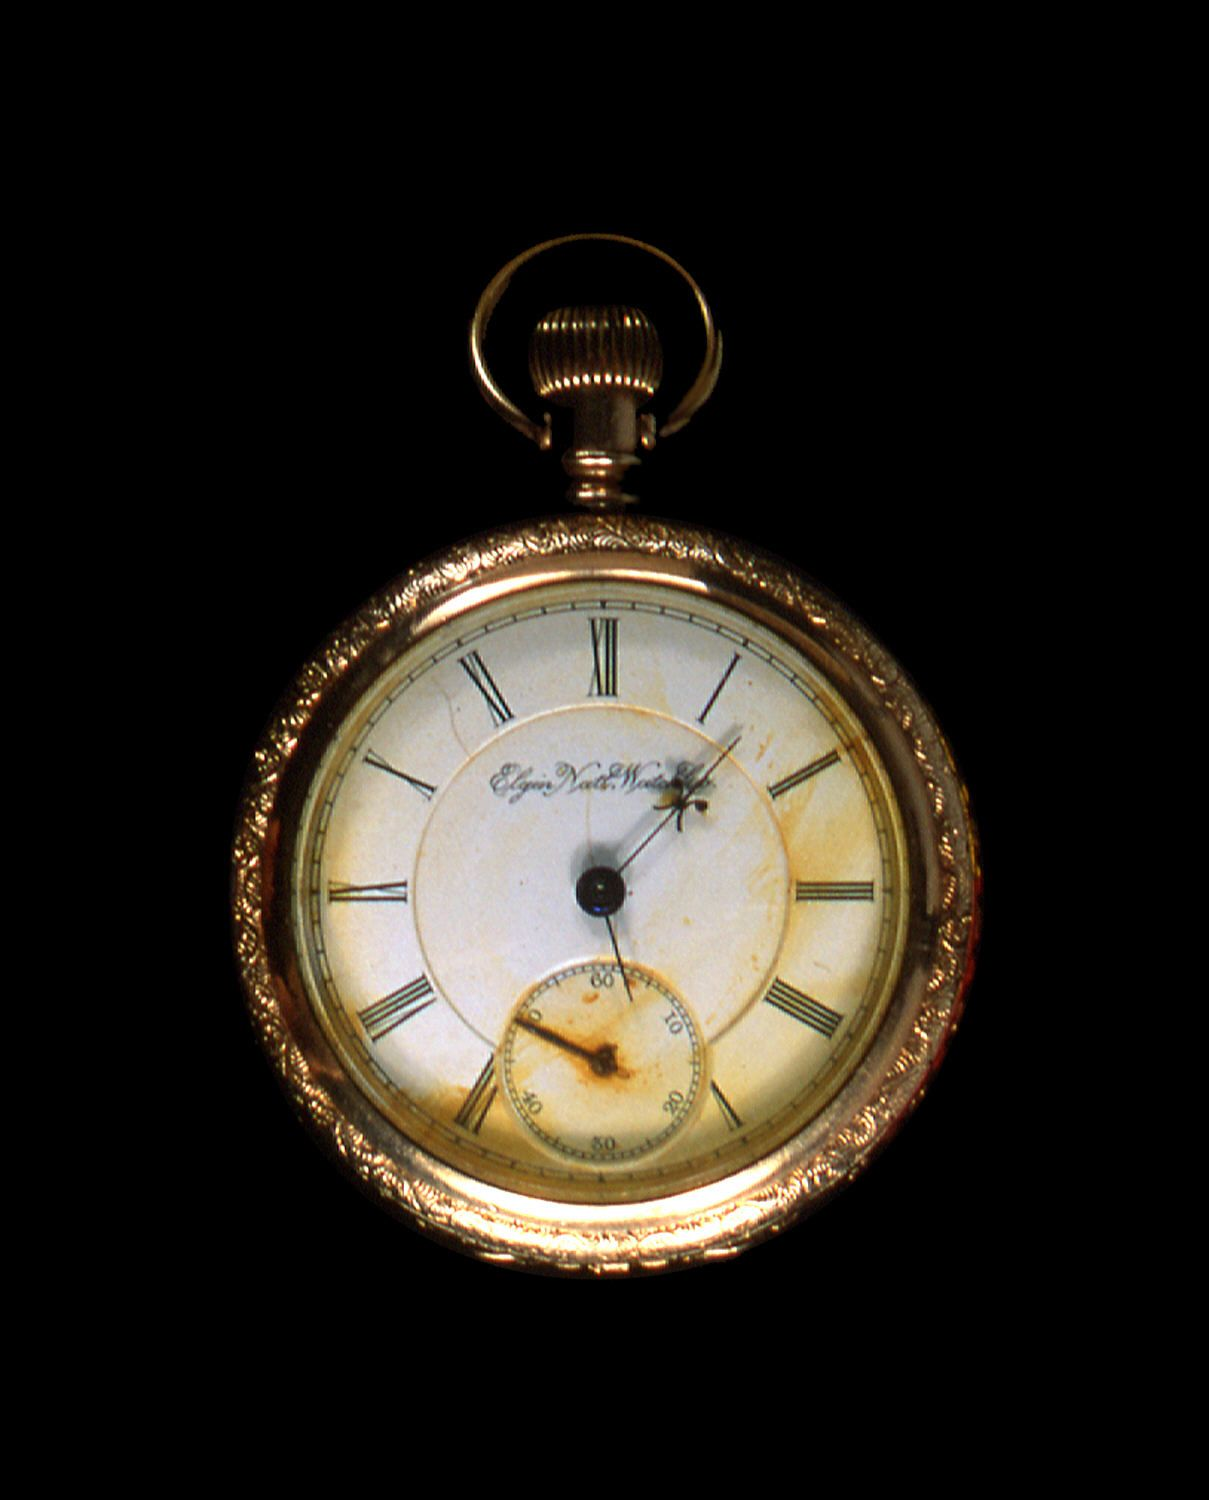 This Watch Was Found On The Body Of John Starr March An